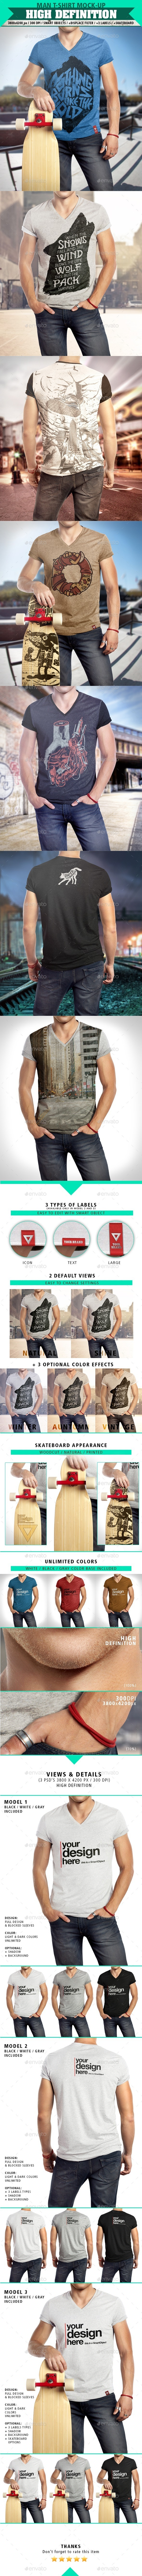 GraphicRiver T-Shirt Vneck Man Mock-up 9030662